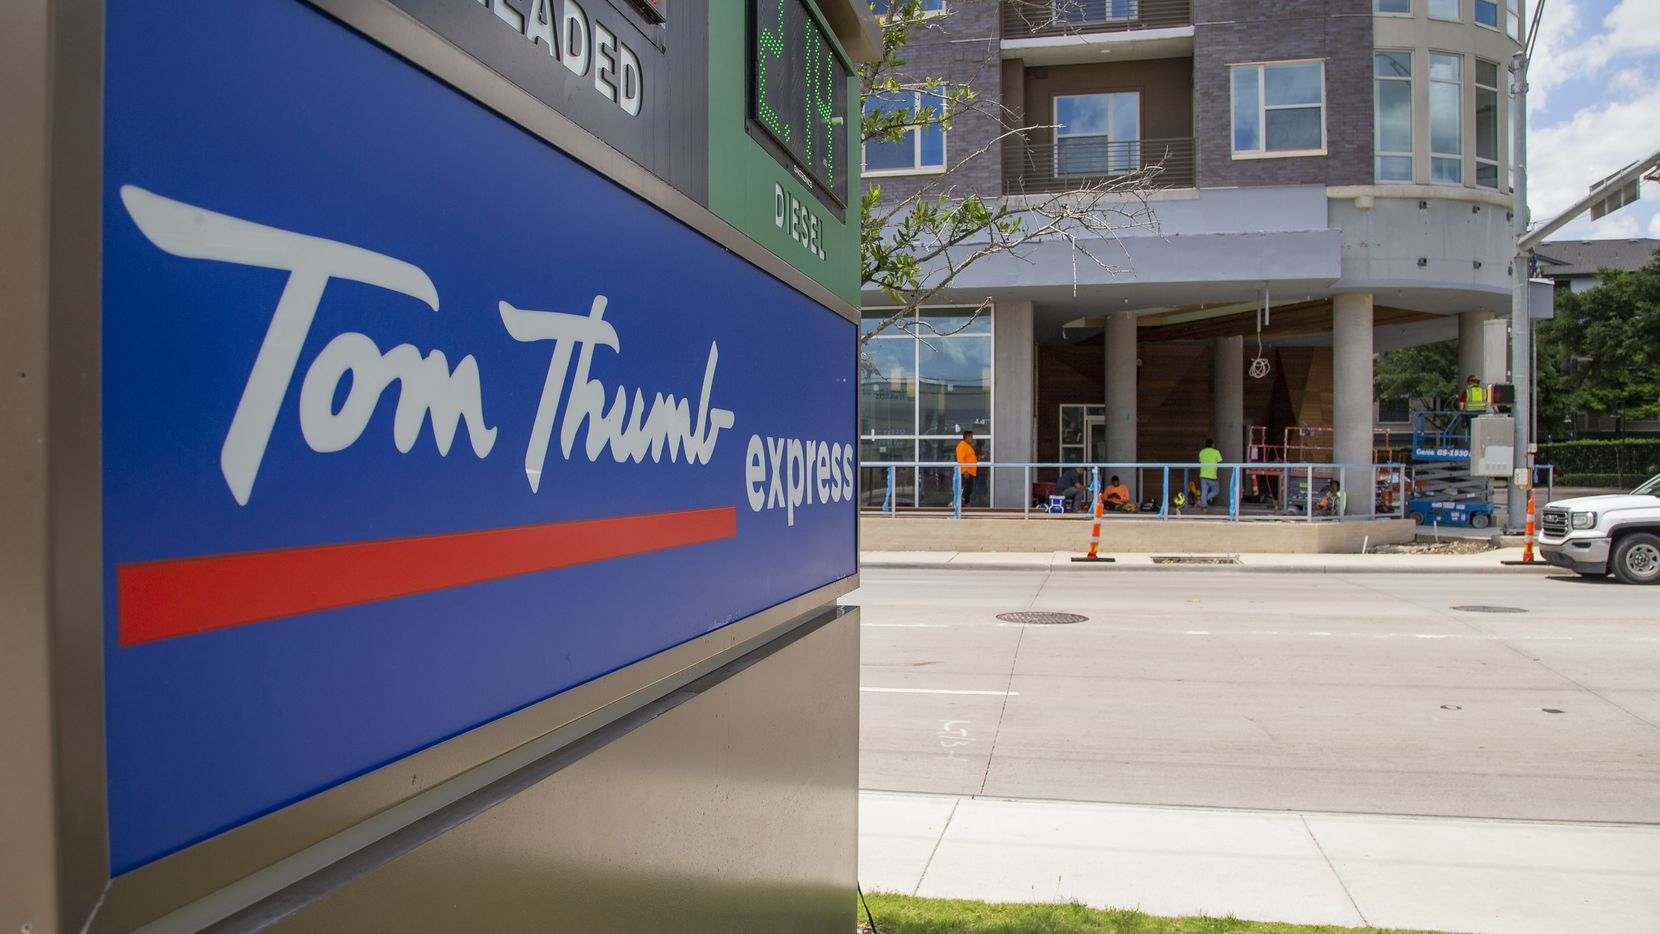 A sign in the foreground for a Tom Thumb Express convenience store sits across the street from the site of a new Tom Thumb store under construction at Live Oak and Texas Street in Dallas on Wednesday. The new store is set to open this fall.